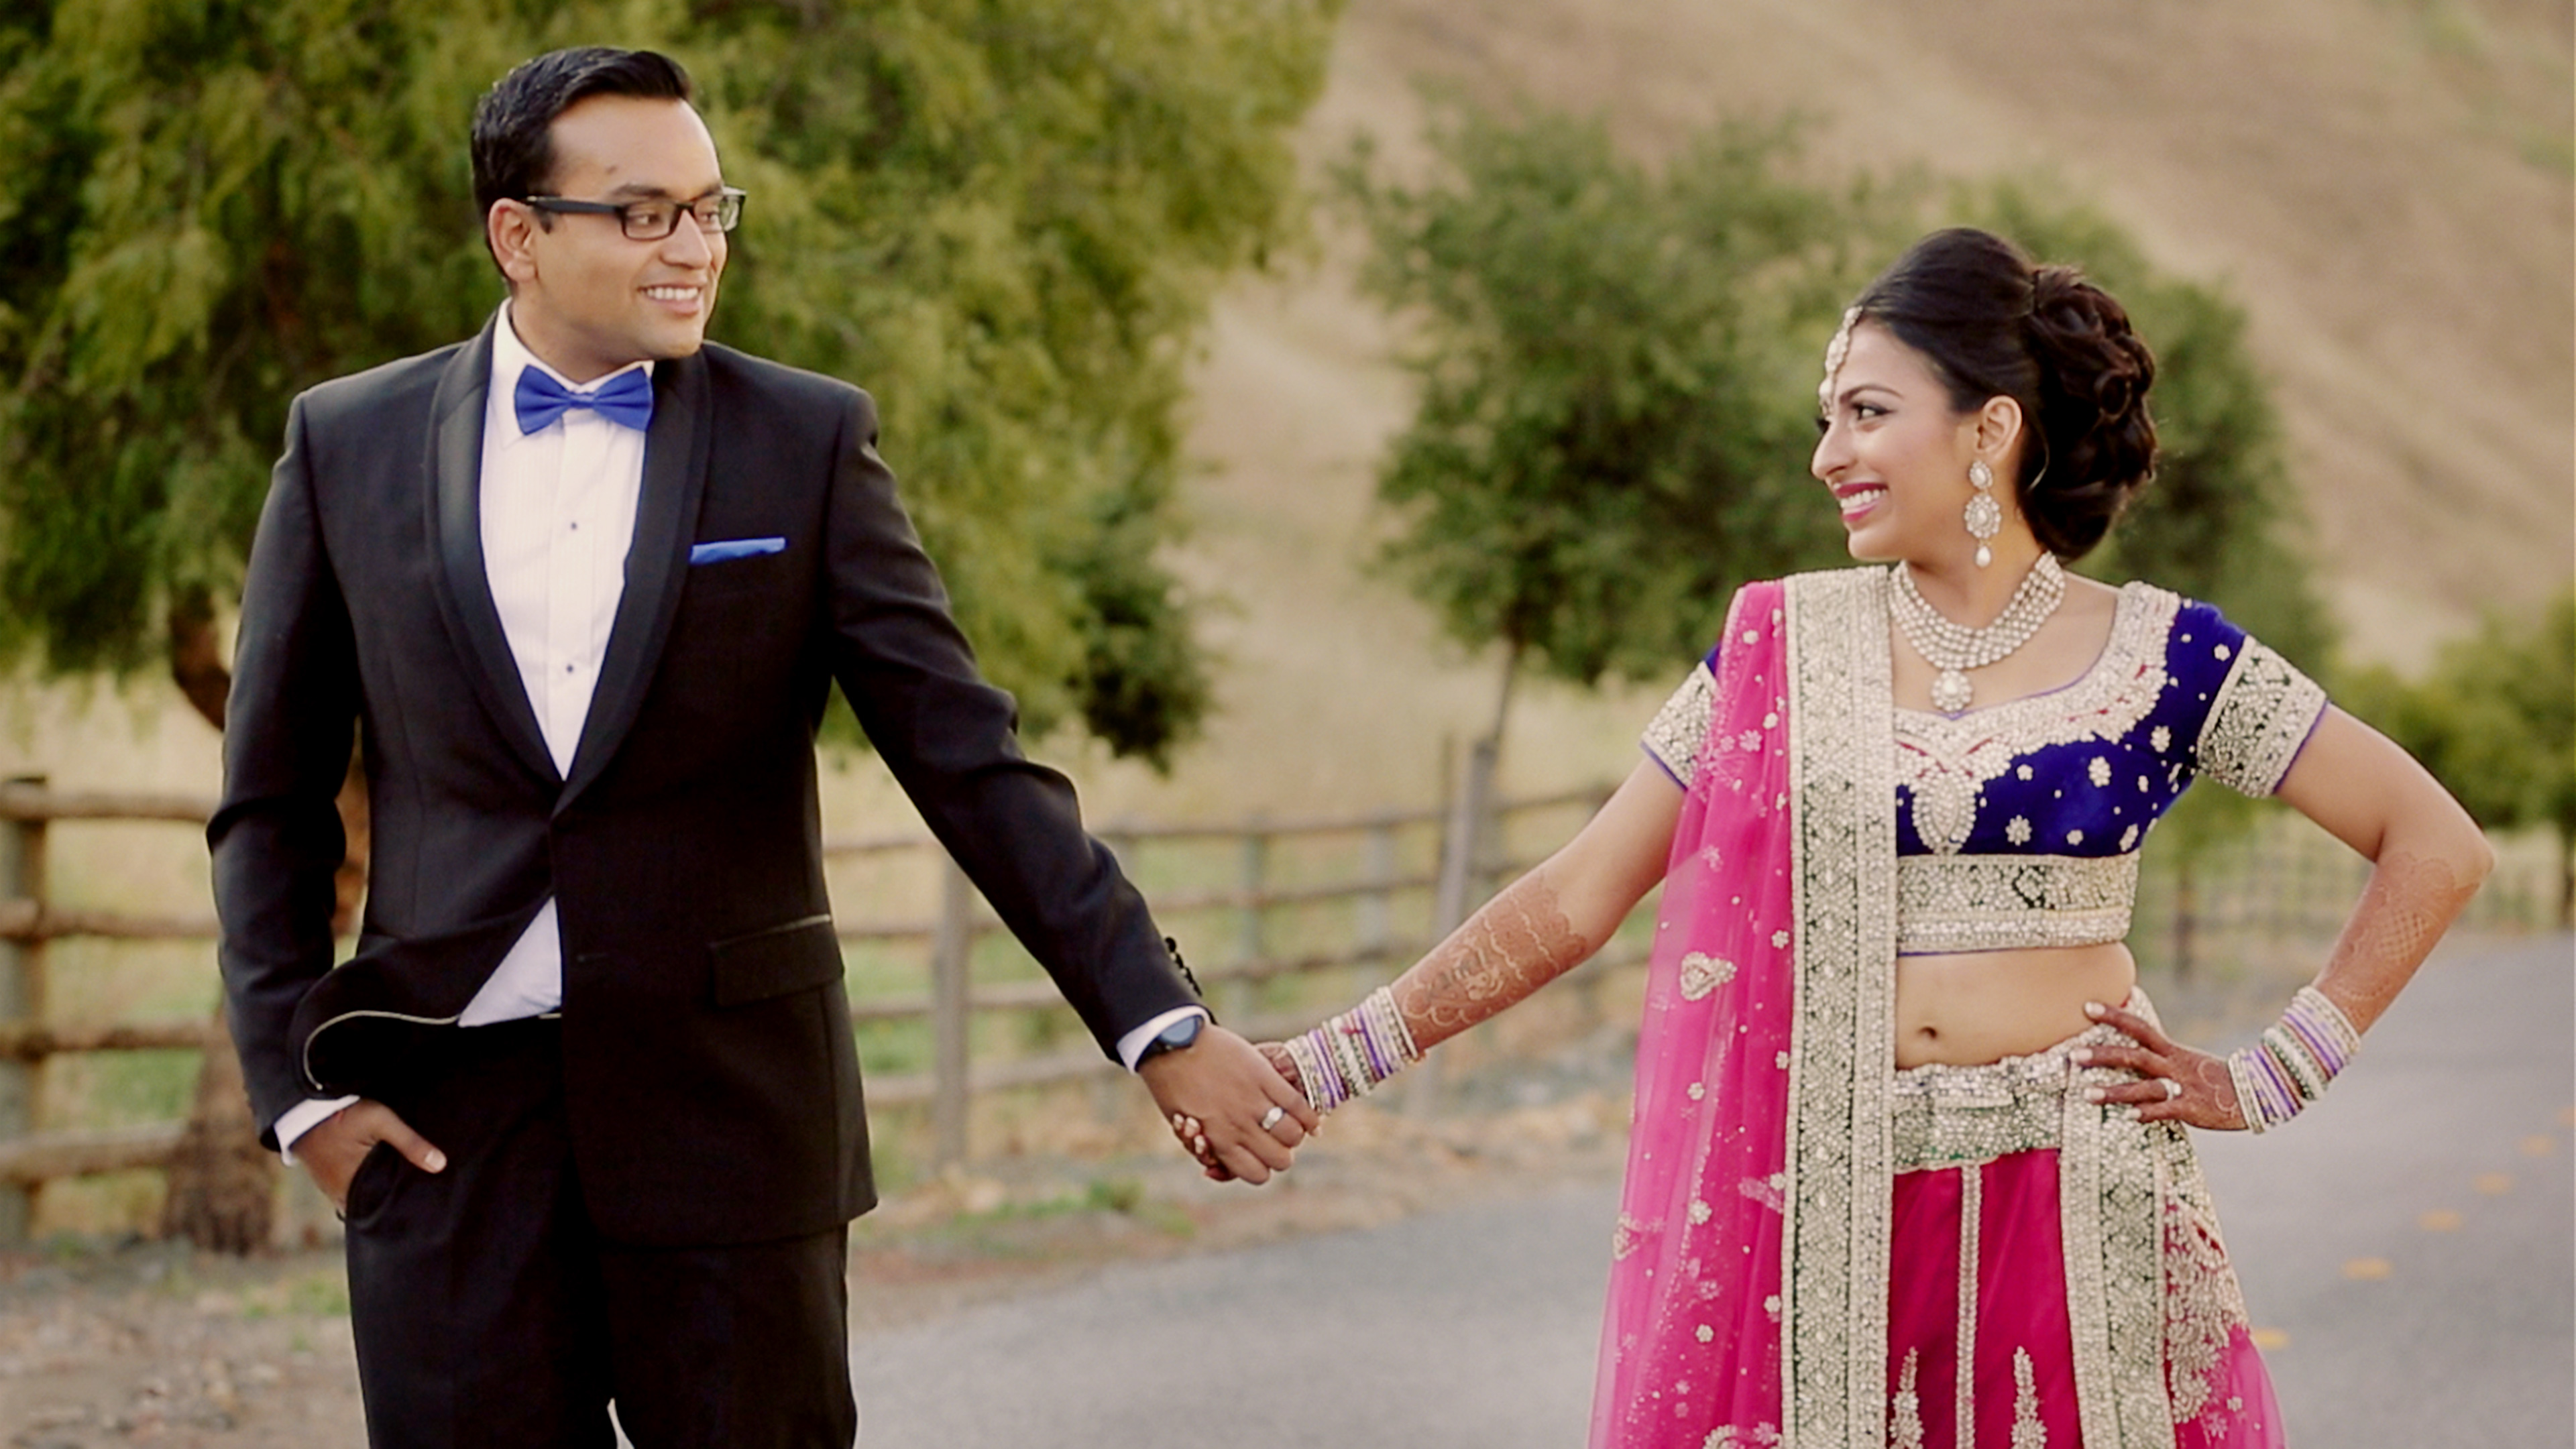 Fremont Indian Wedding Videography & Cinematography - Aperina Studios